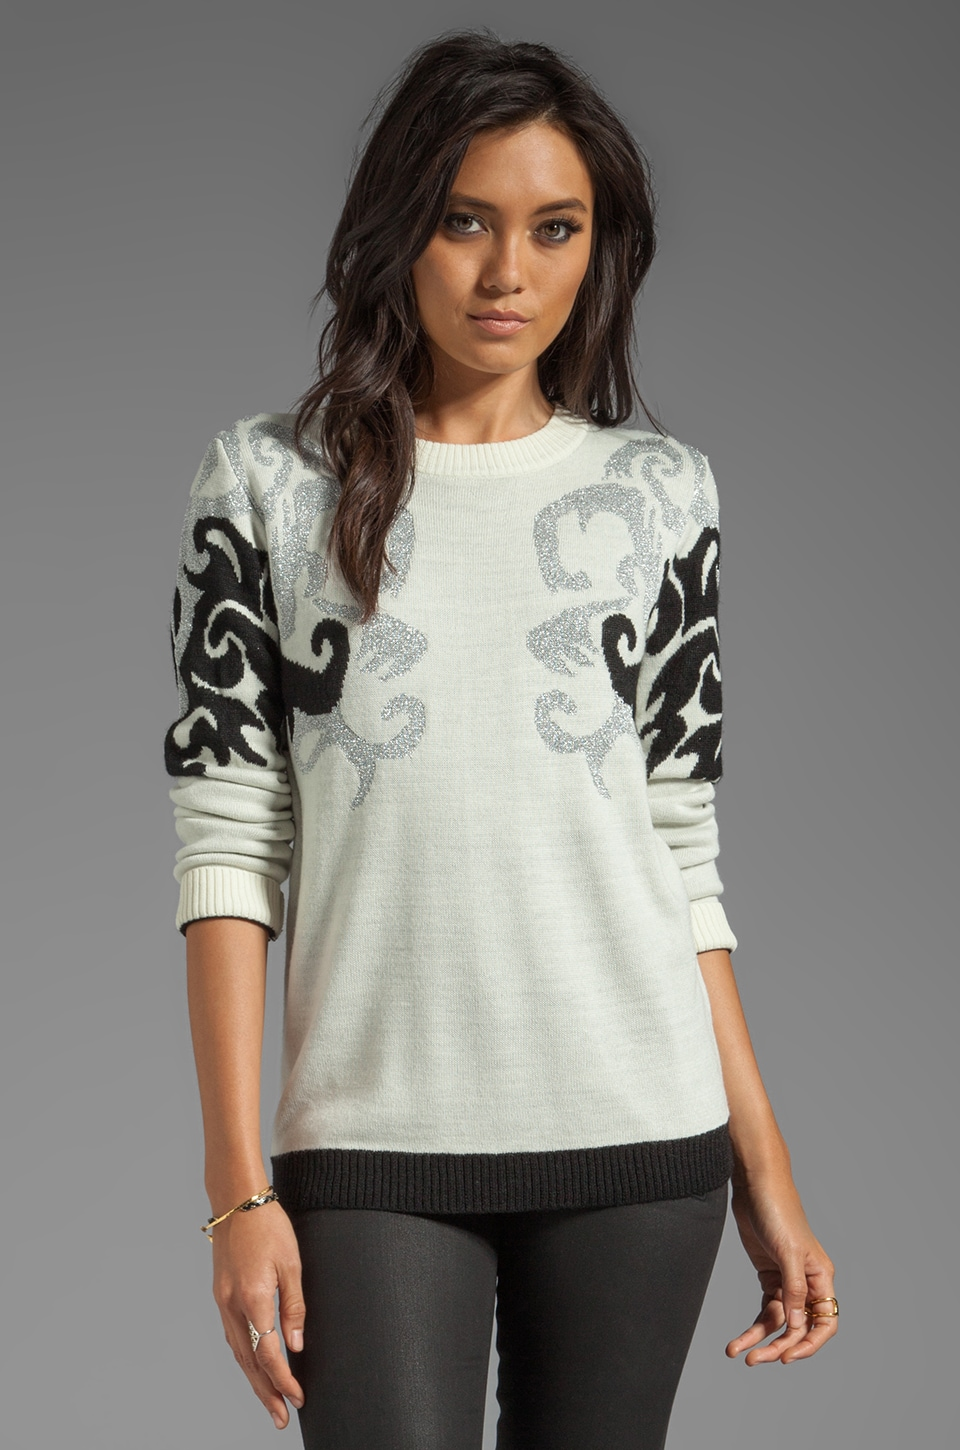 American Retro Amanda Sweater in White